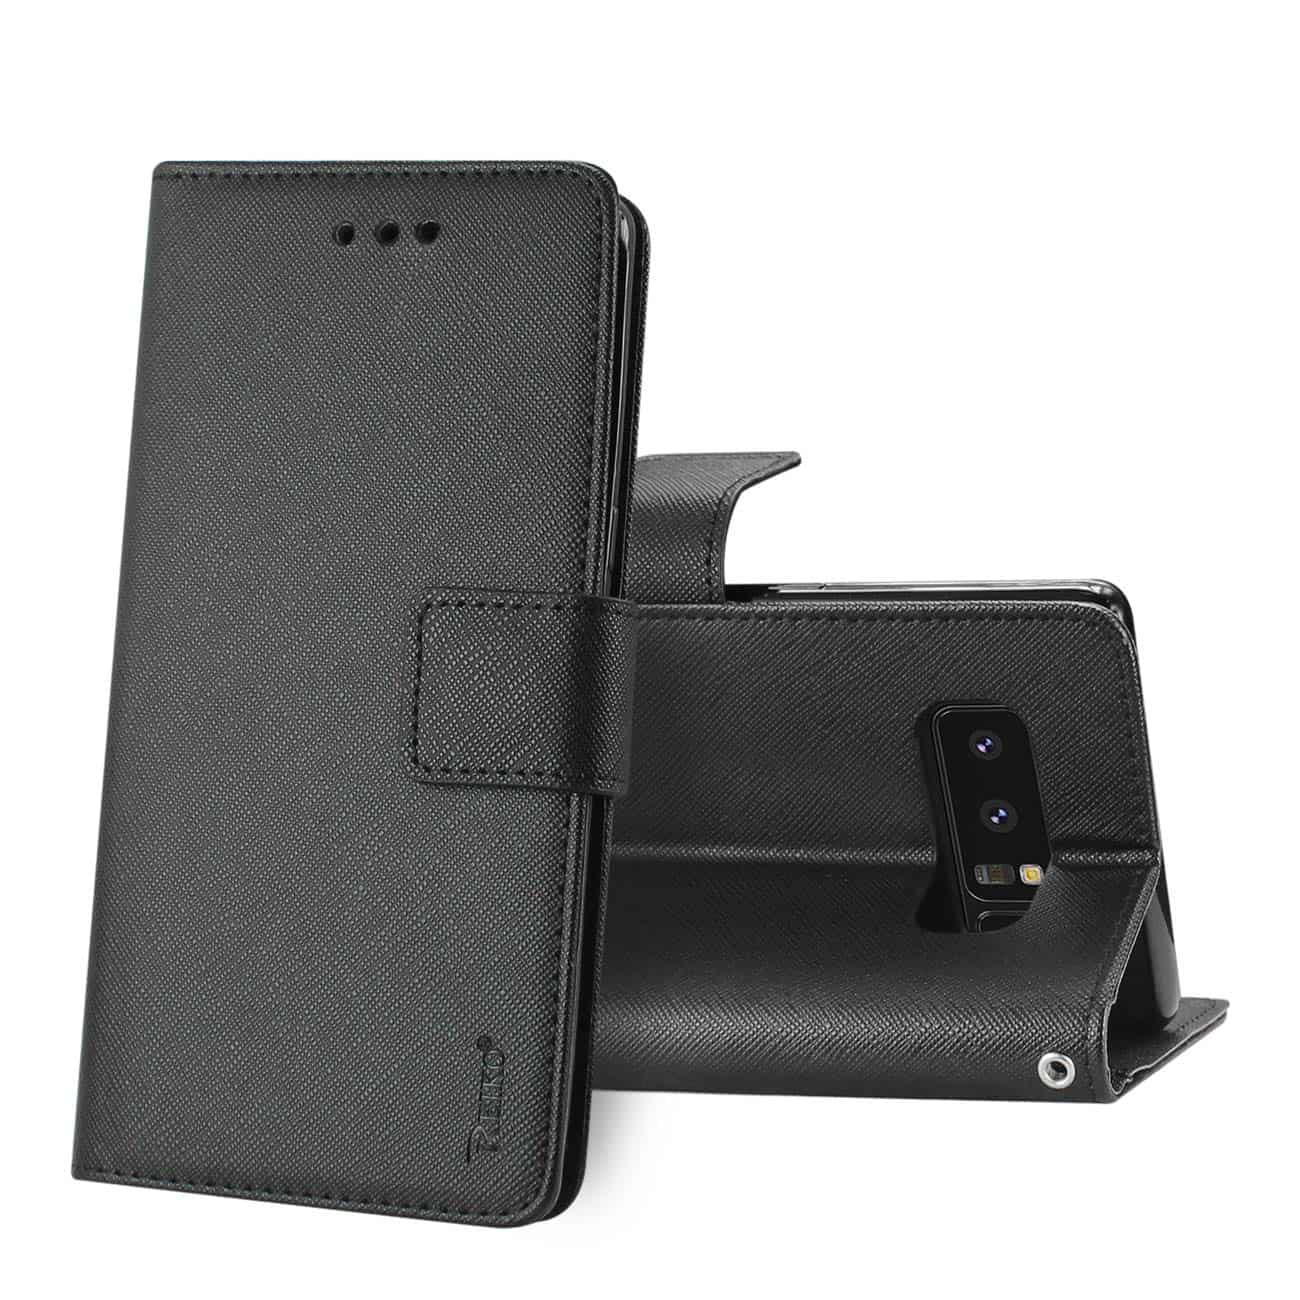 SAMSUNG GALAXY NOTE 8 3-IN-1 WALLET CASE IN BLACK